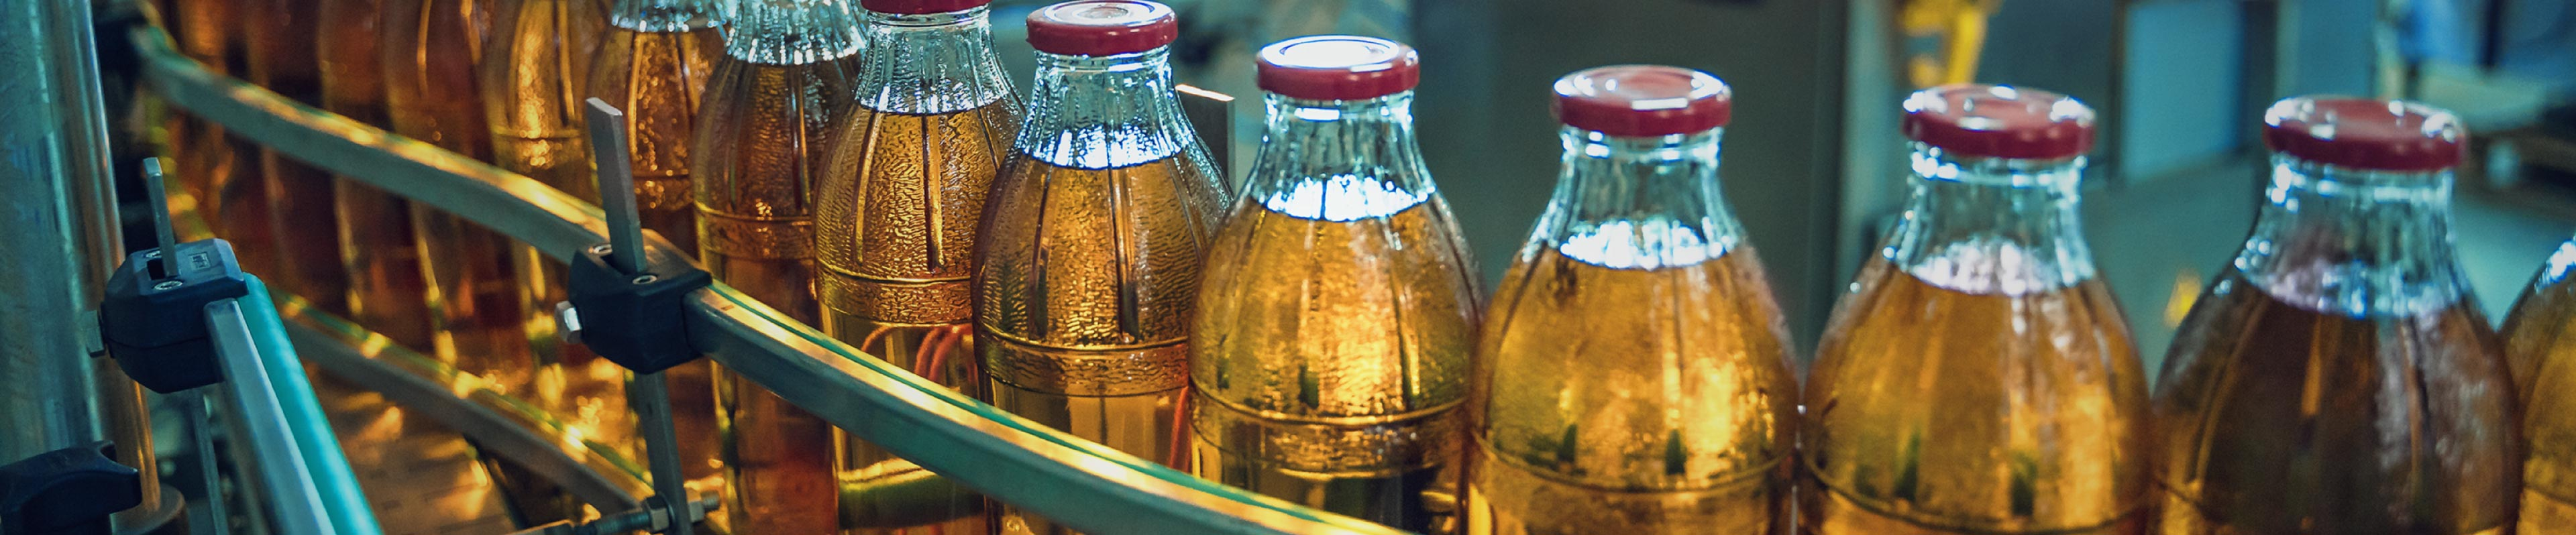 Make An Offer - COMPLETE SOFT DRINKS PRODUCTION & PACKAGING FACILITY EXTENED CLOSE DATE – EXTRA LOTS ADDED